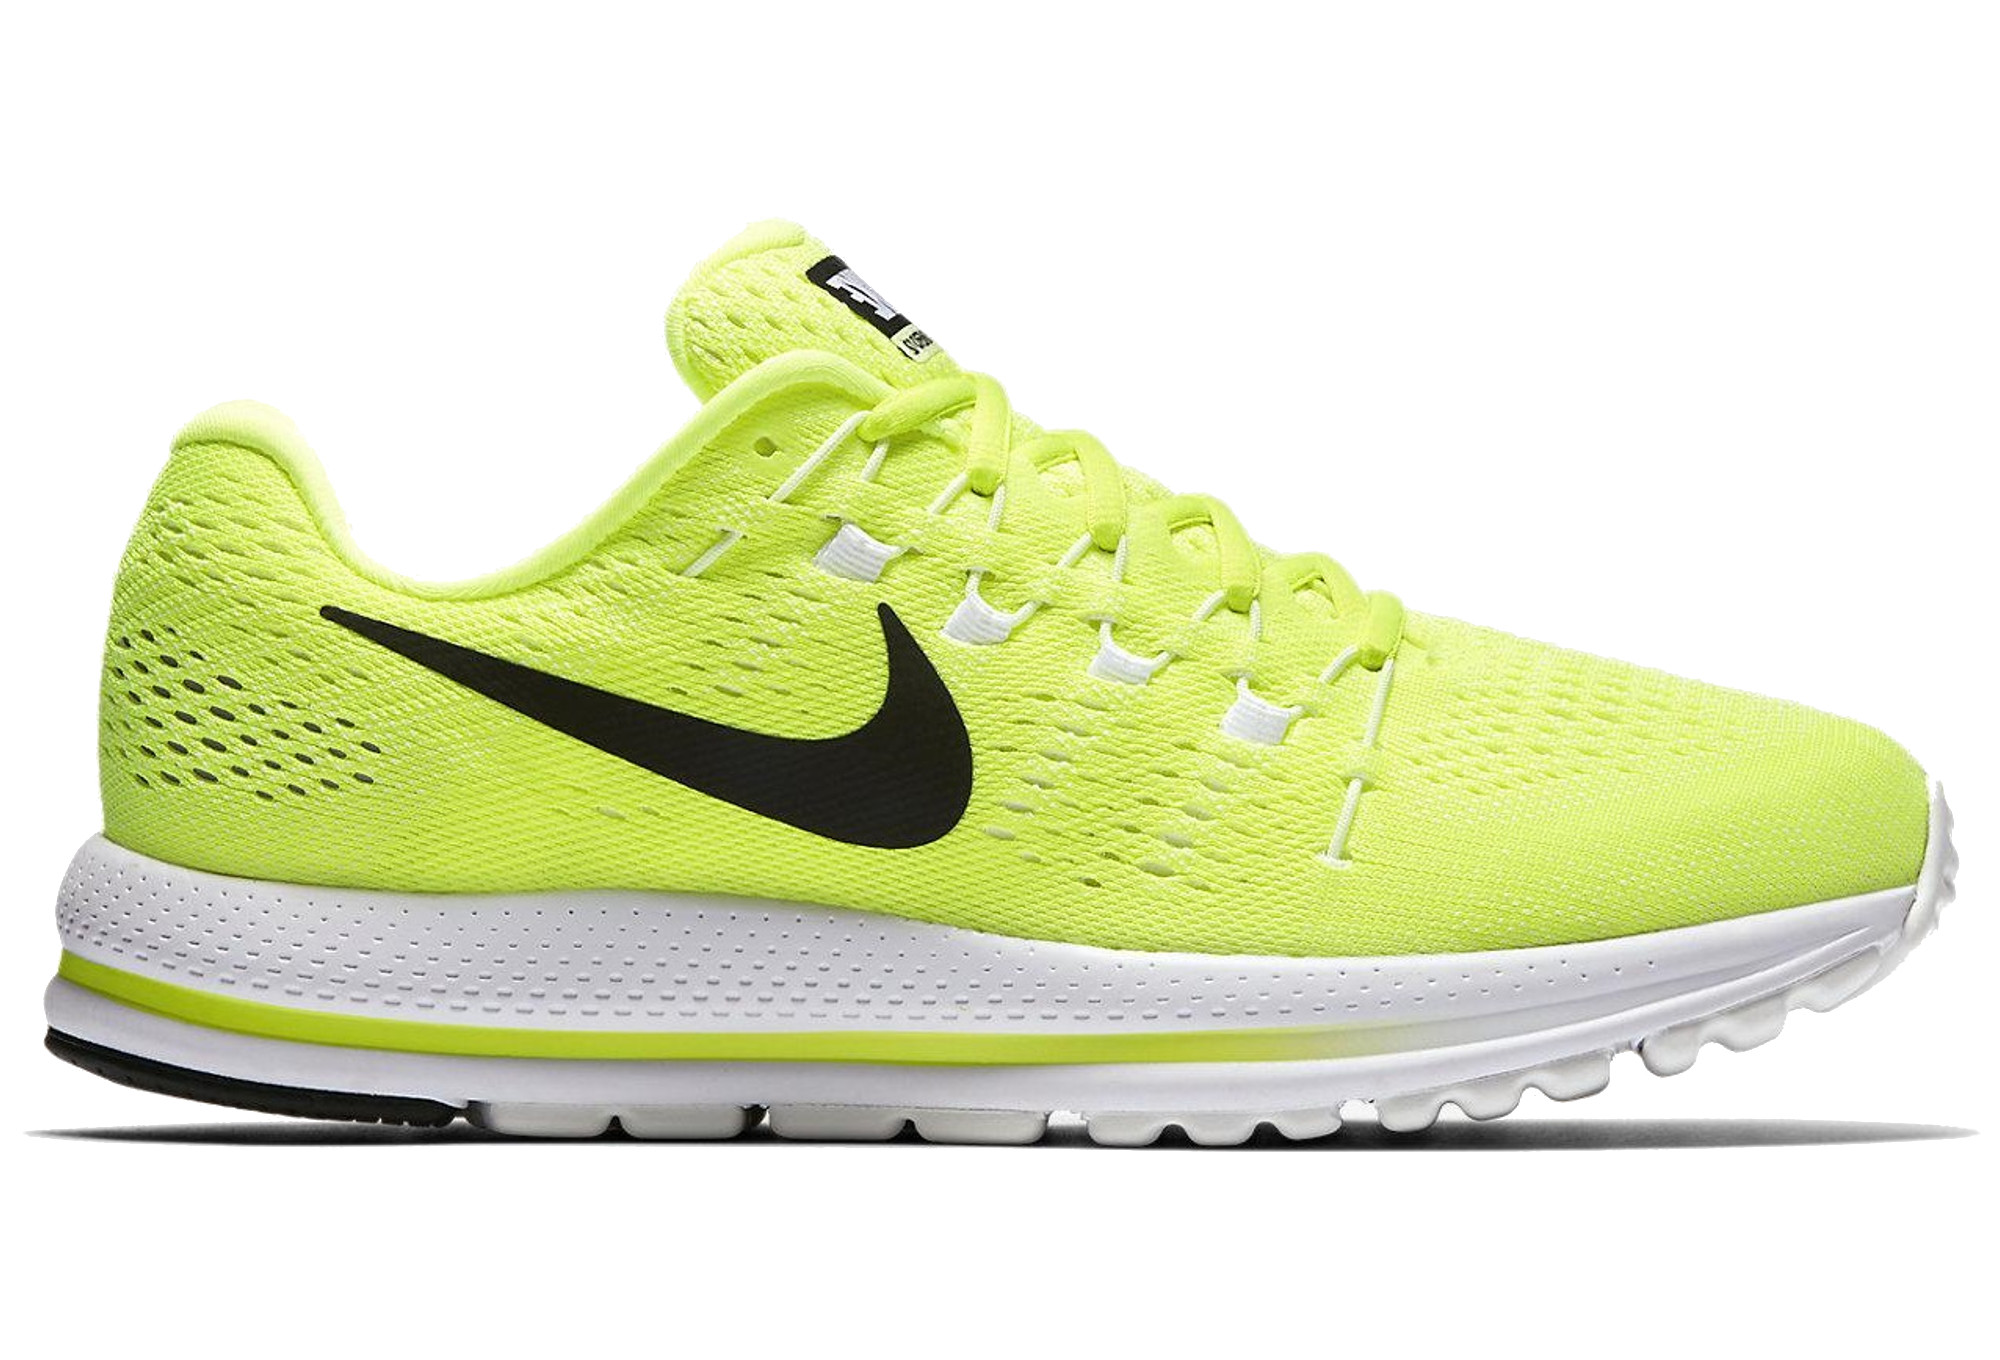 best website a8a4a e4379 Chaussures de Running Nike AIR ZOOM VOMERO 12 Jaune   Blanc